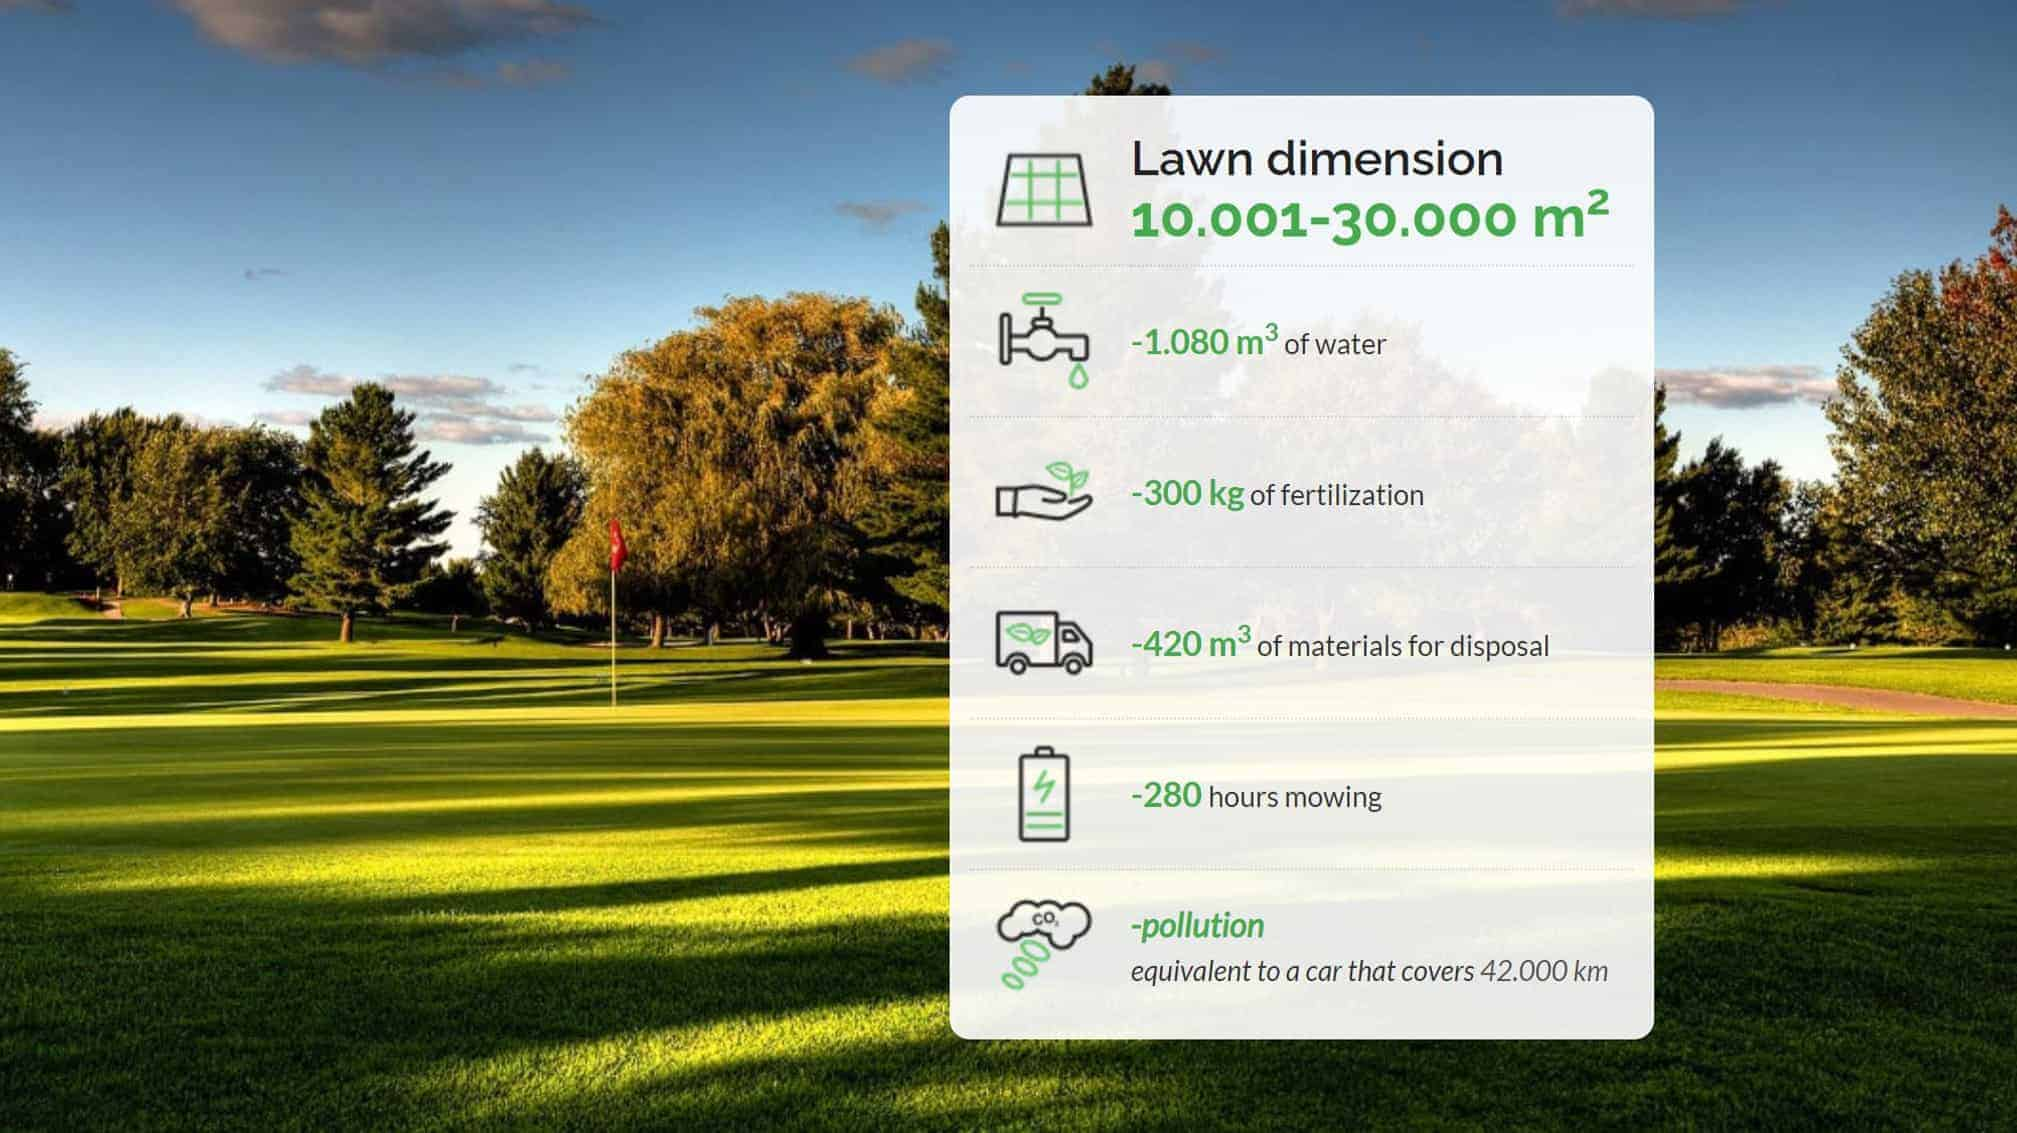 Annual saving by using a robotic mower in 10.001-30.000m2 lawn dimension-